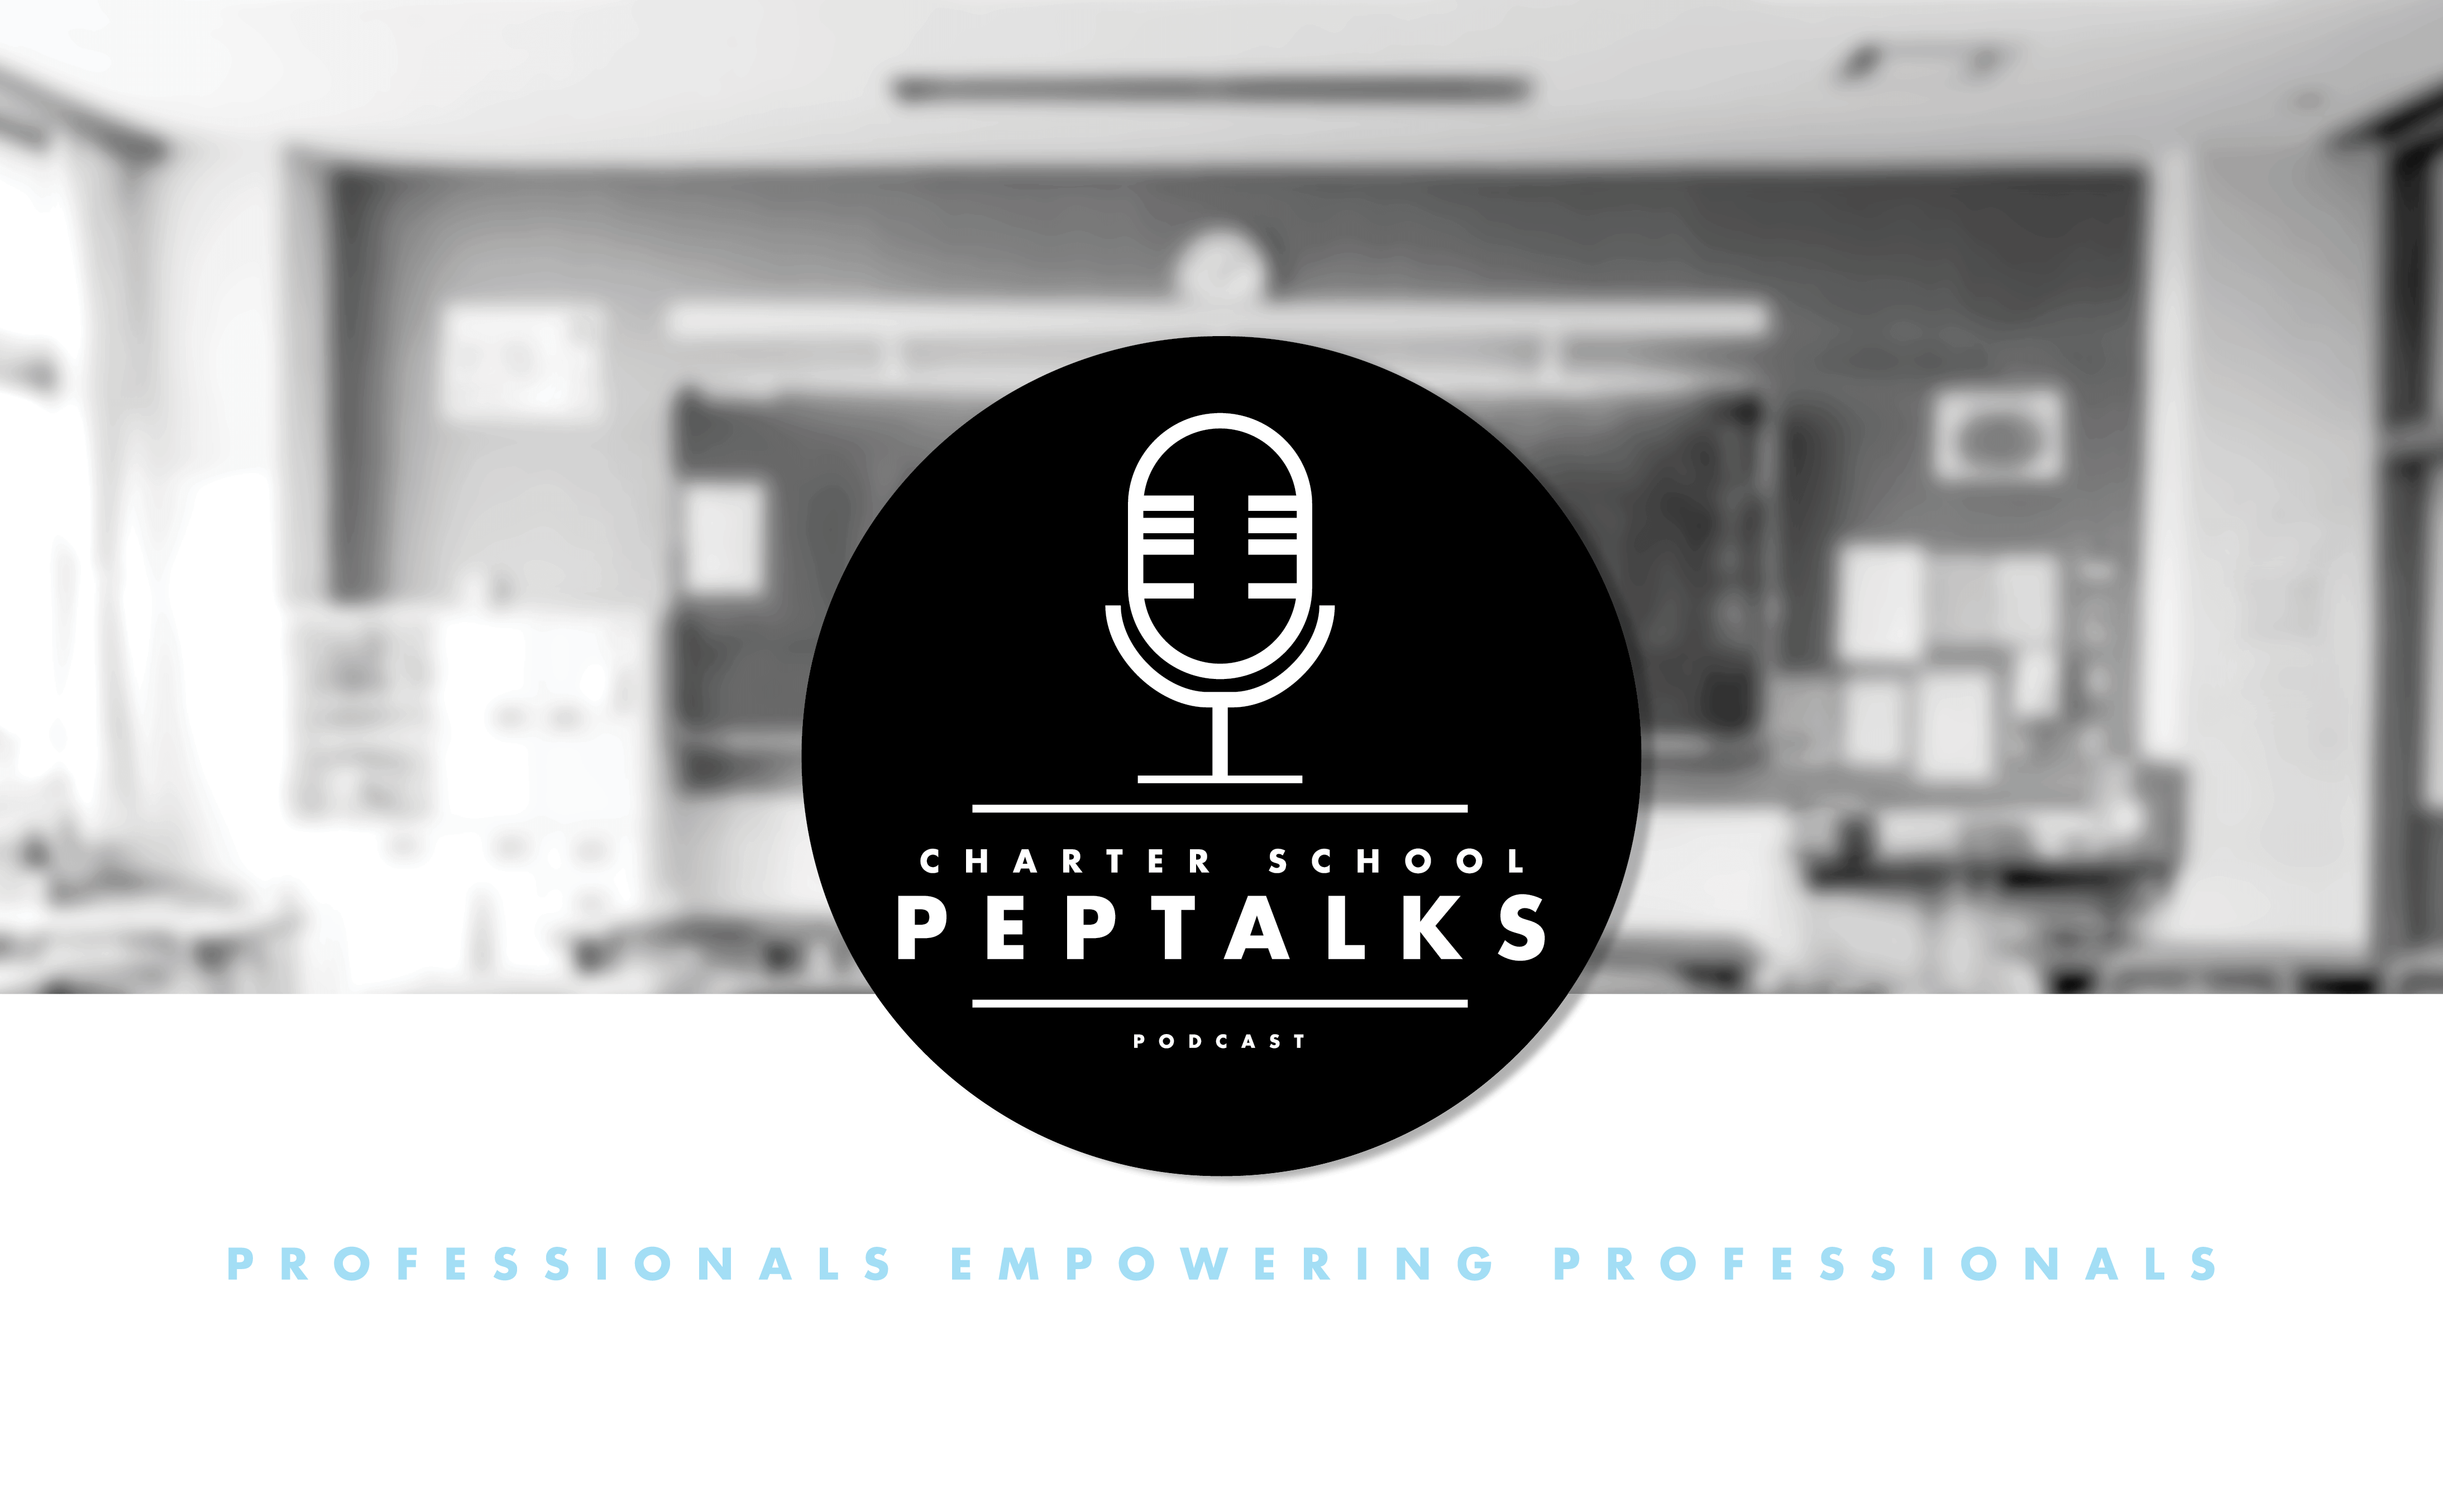 peptalks-podcast